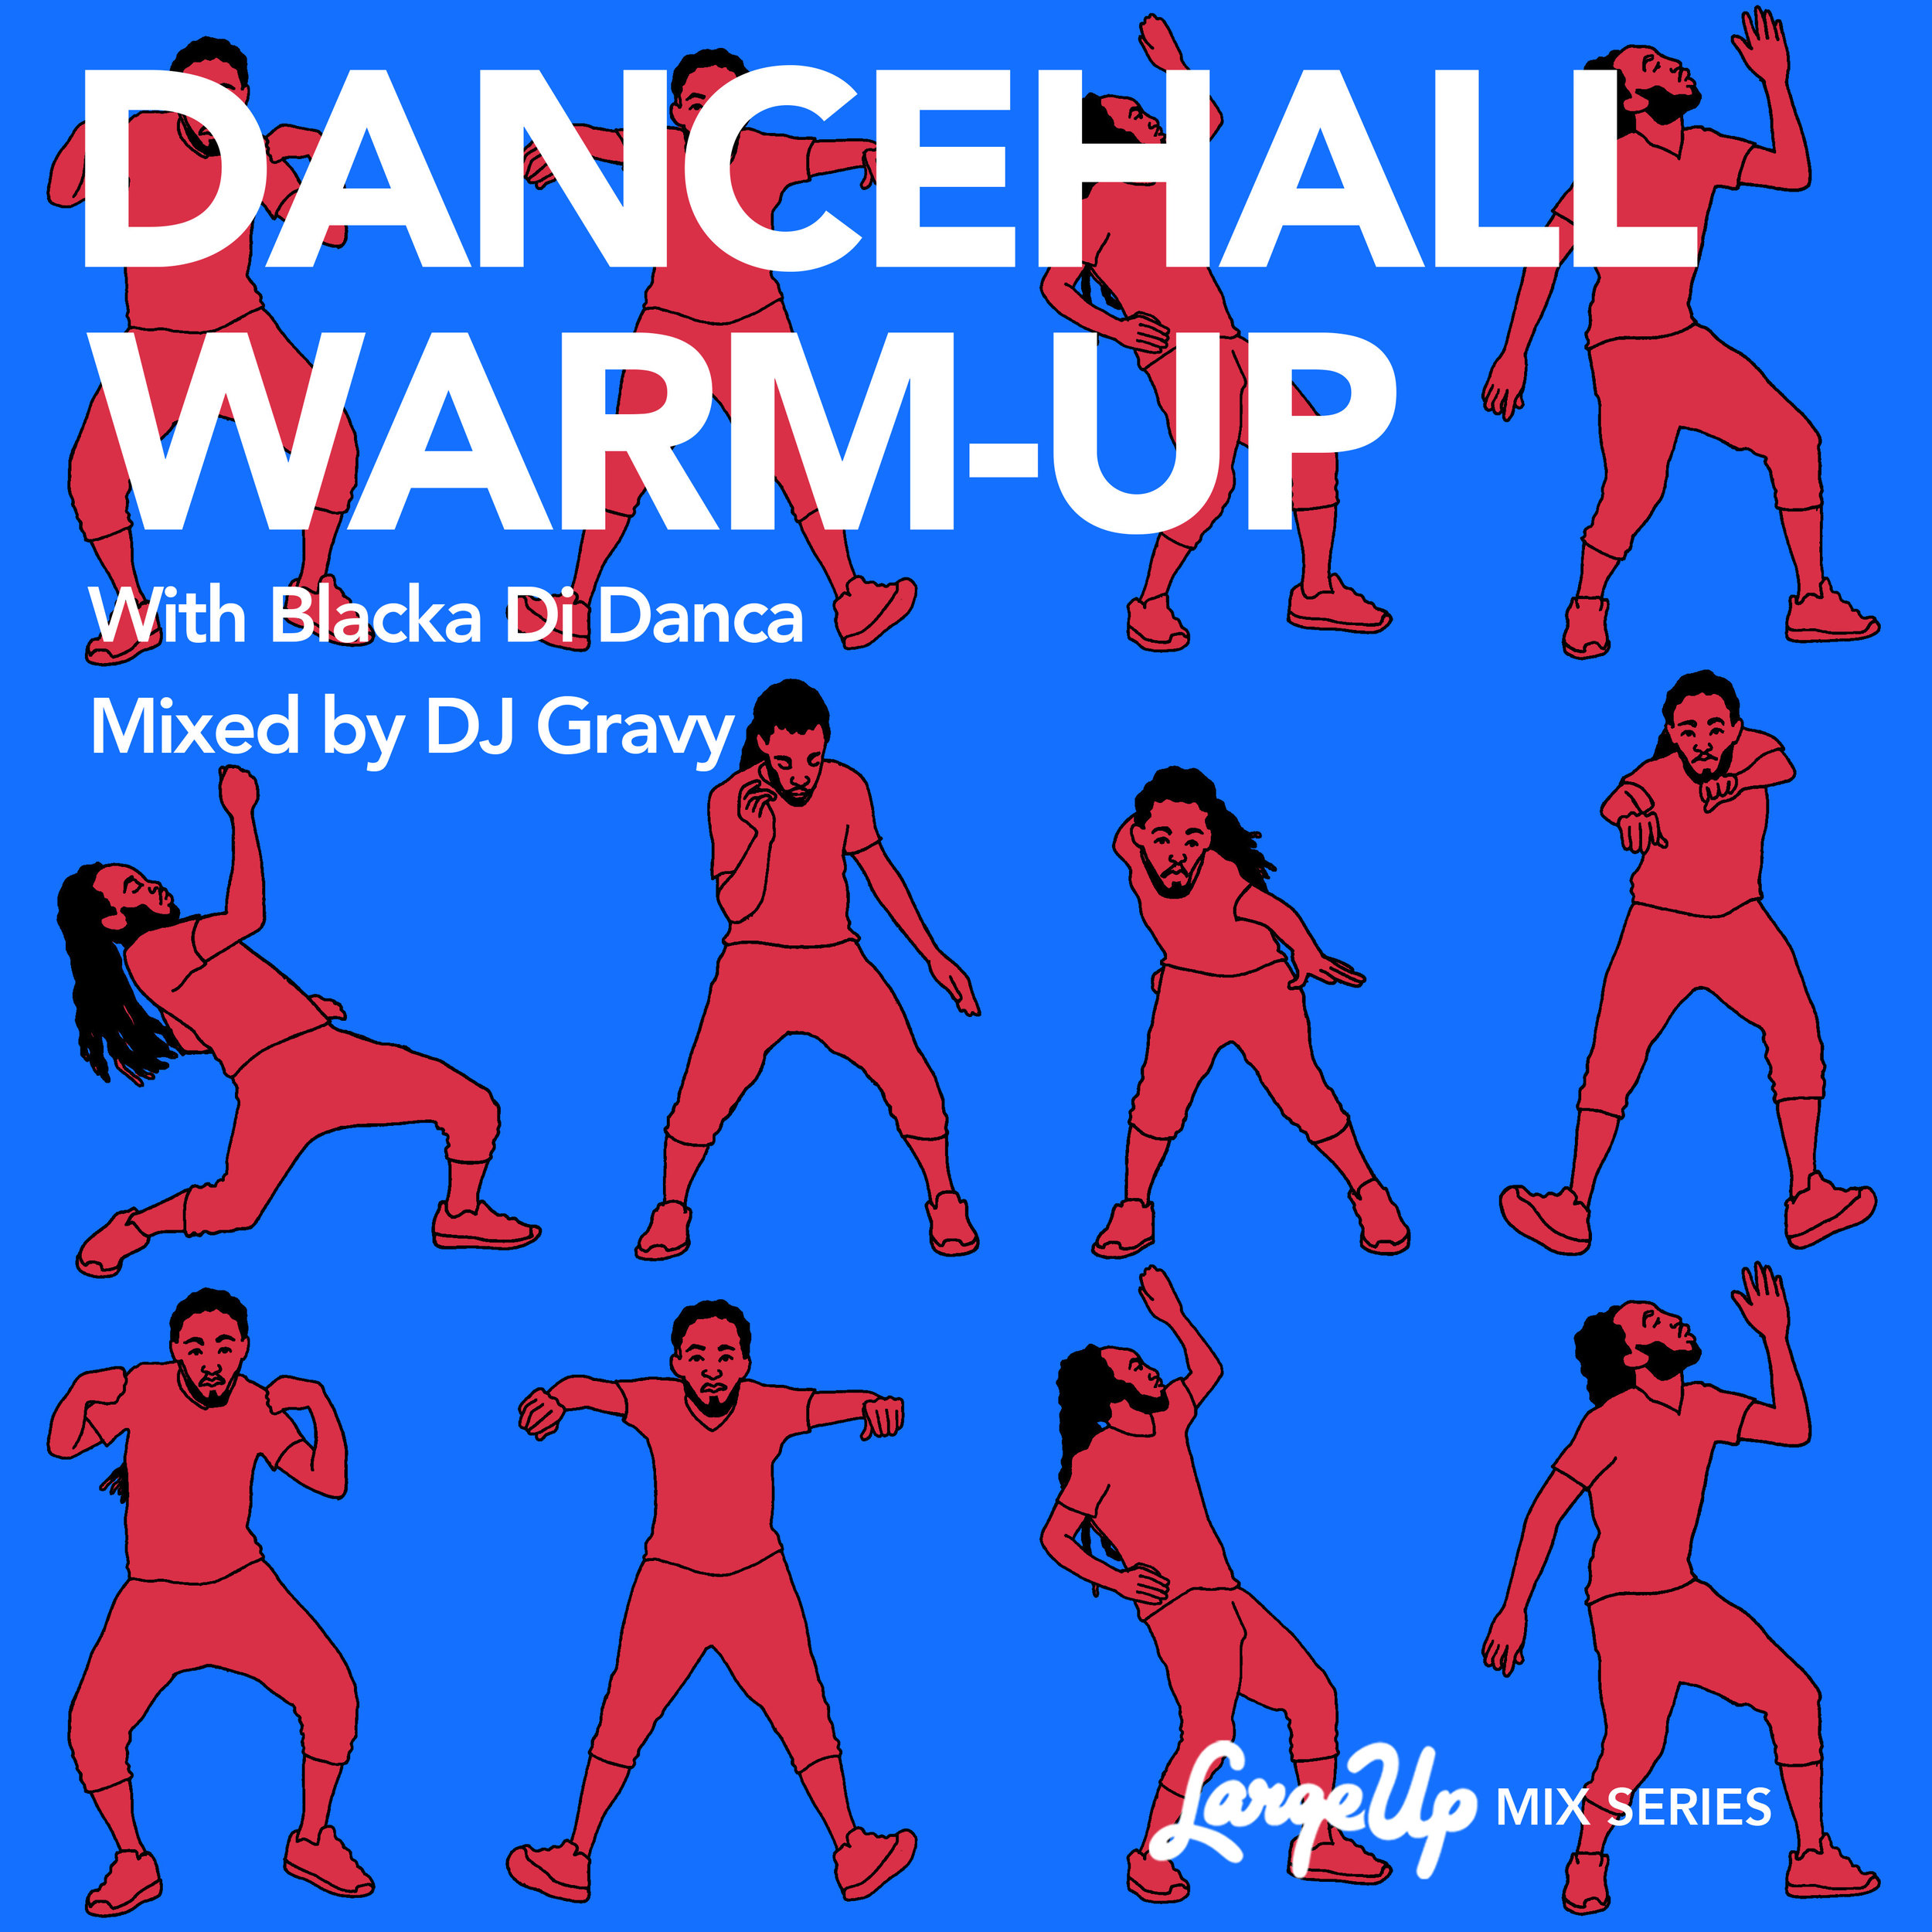 LargeUp.com - Dancehall Warm-Up (mixtape)